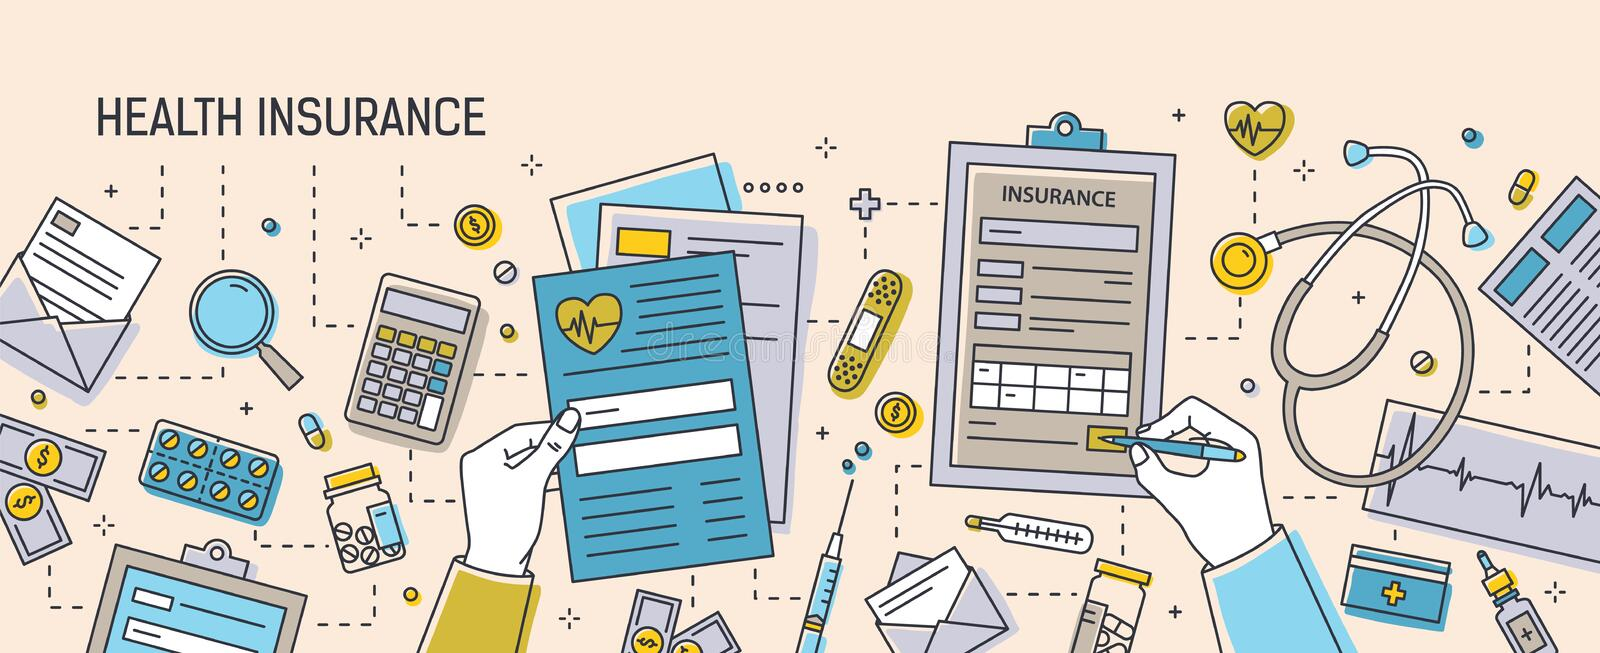 Horizontal banner with hands filling out health insurance documents surrounded by paper forms, medications, medical vector illustration